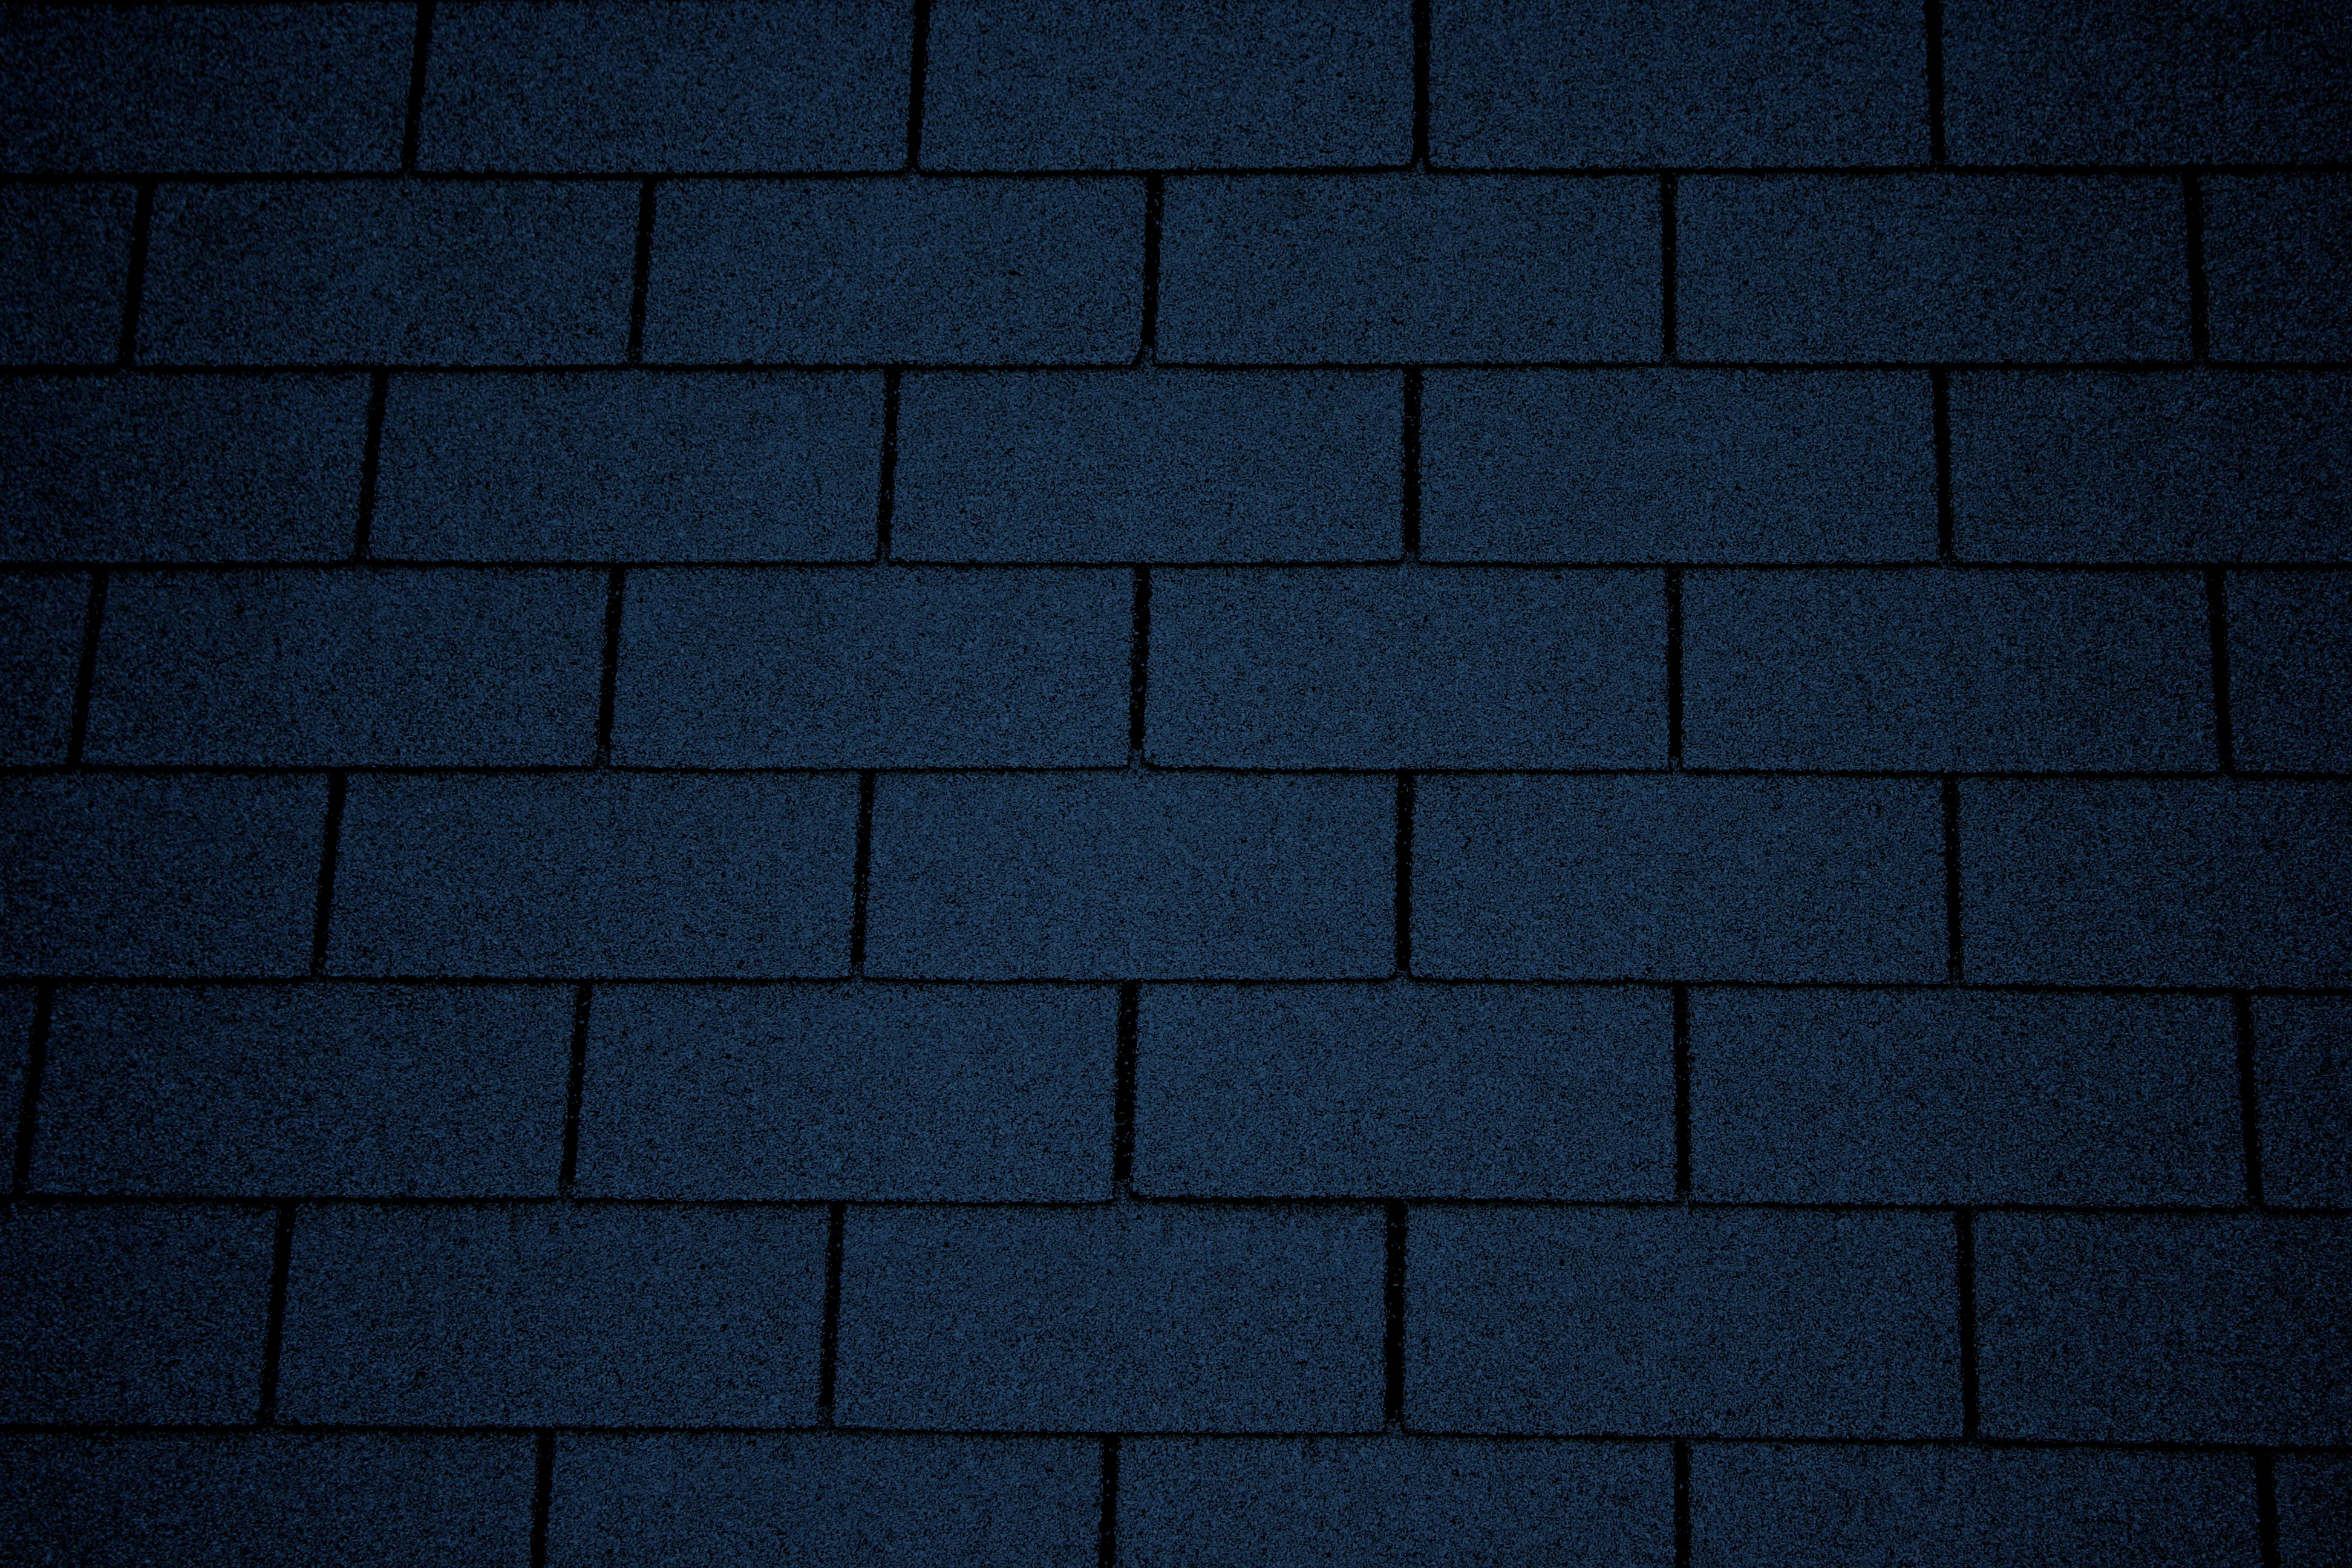 Dark Blue Asphalt Roof Shingles Texture Picture Free